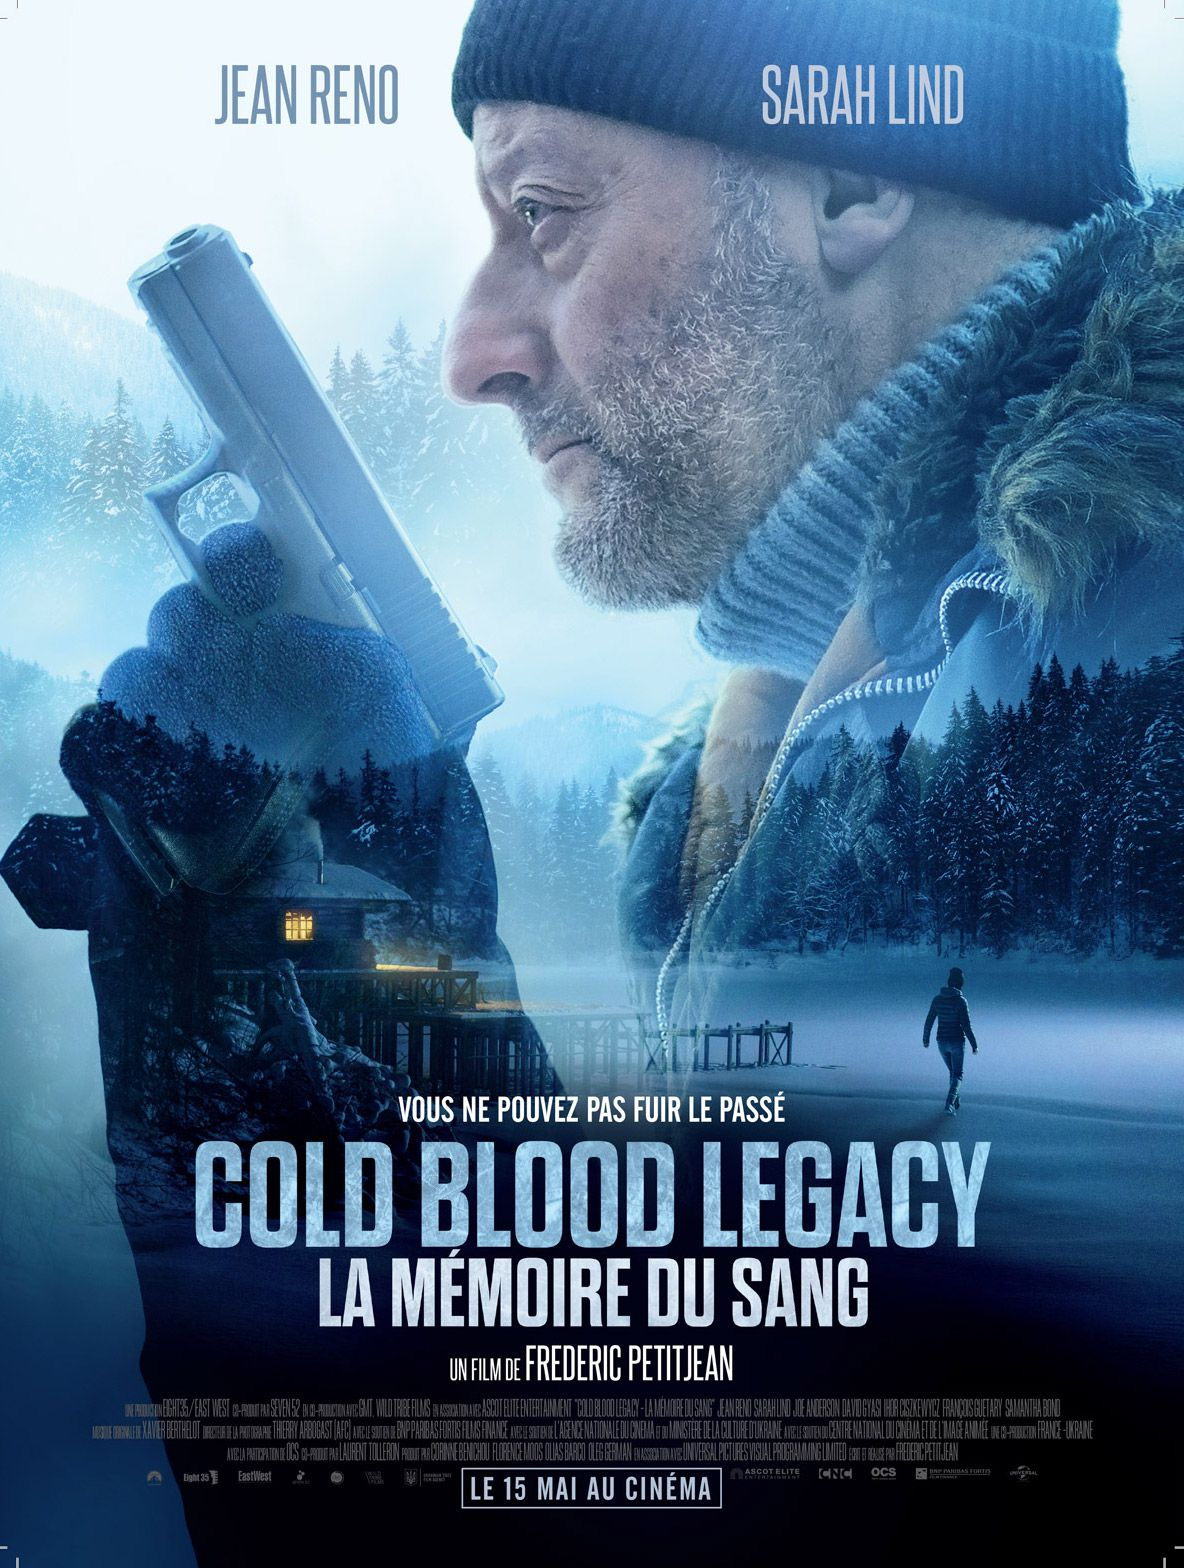 Cold Blood Legacy - La mémoire du sang - Film (2019) streaming VF gratuit complet